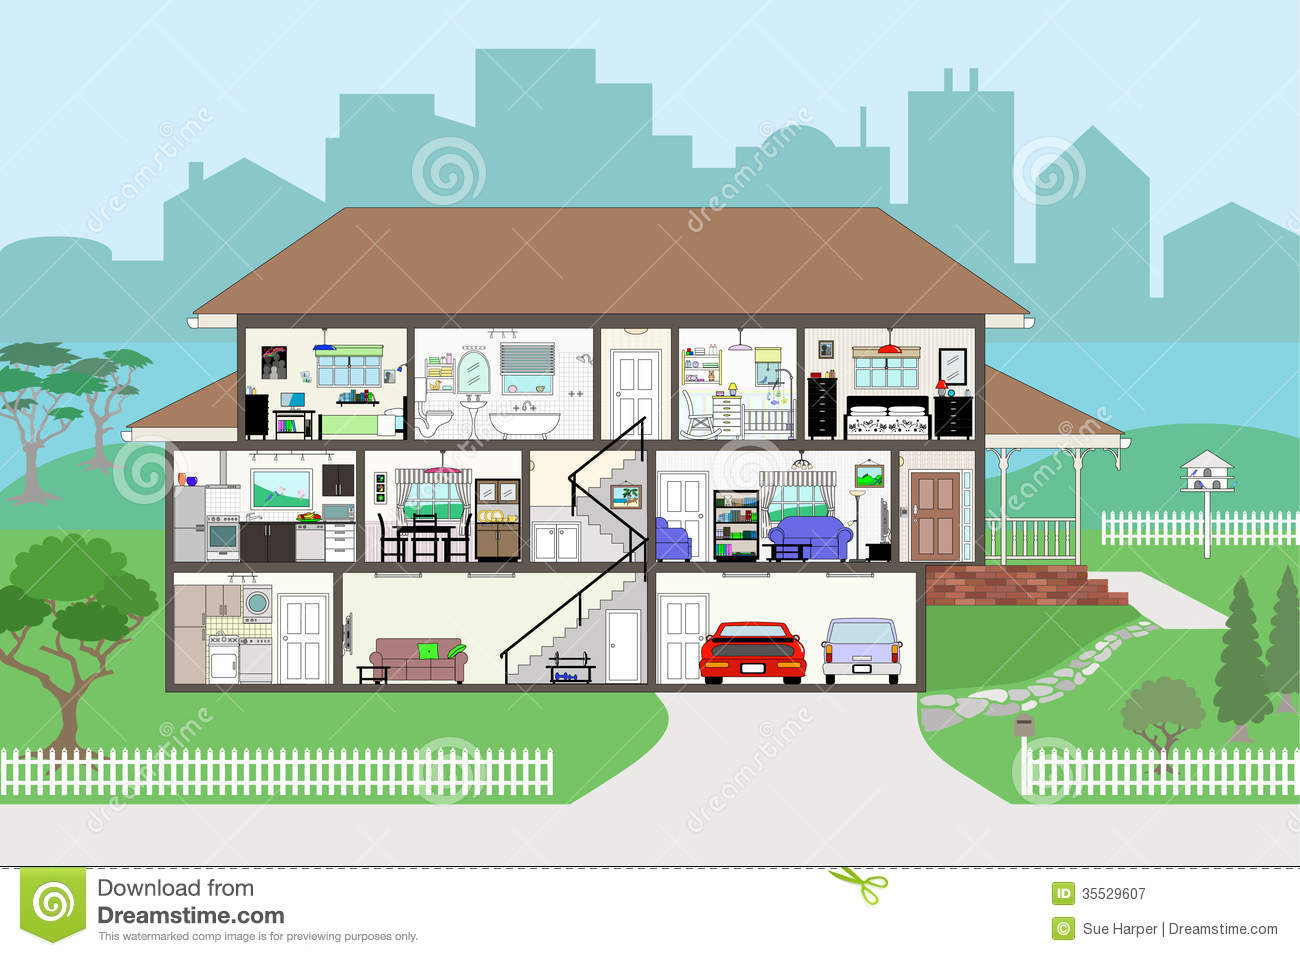 Garage door clip art - Cutaway House With Highly Detailed Rooms Eps8 Royalty Free